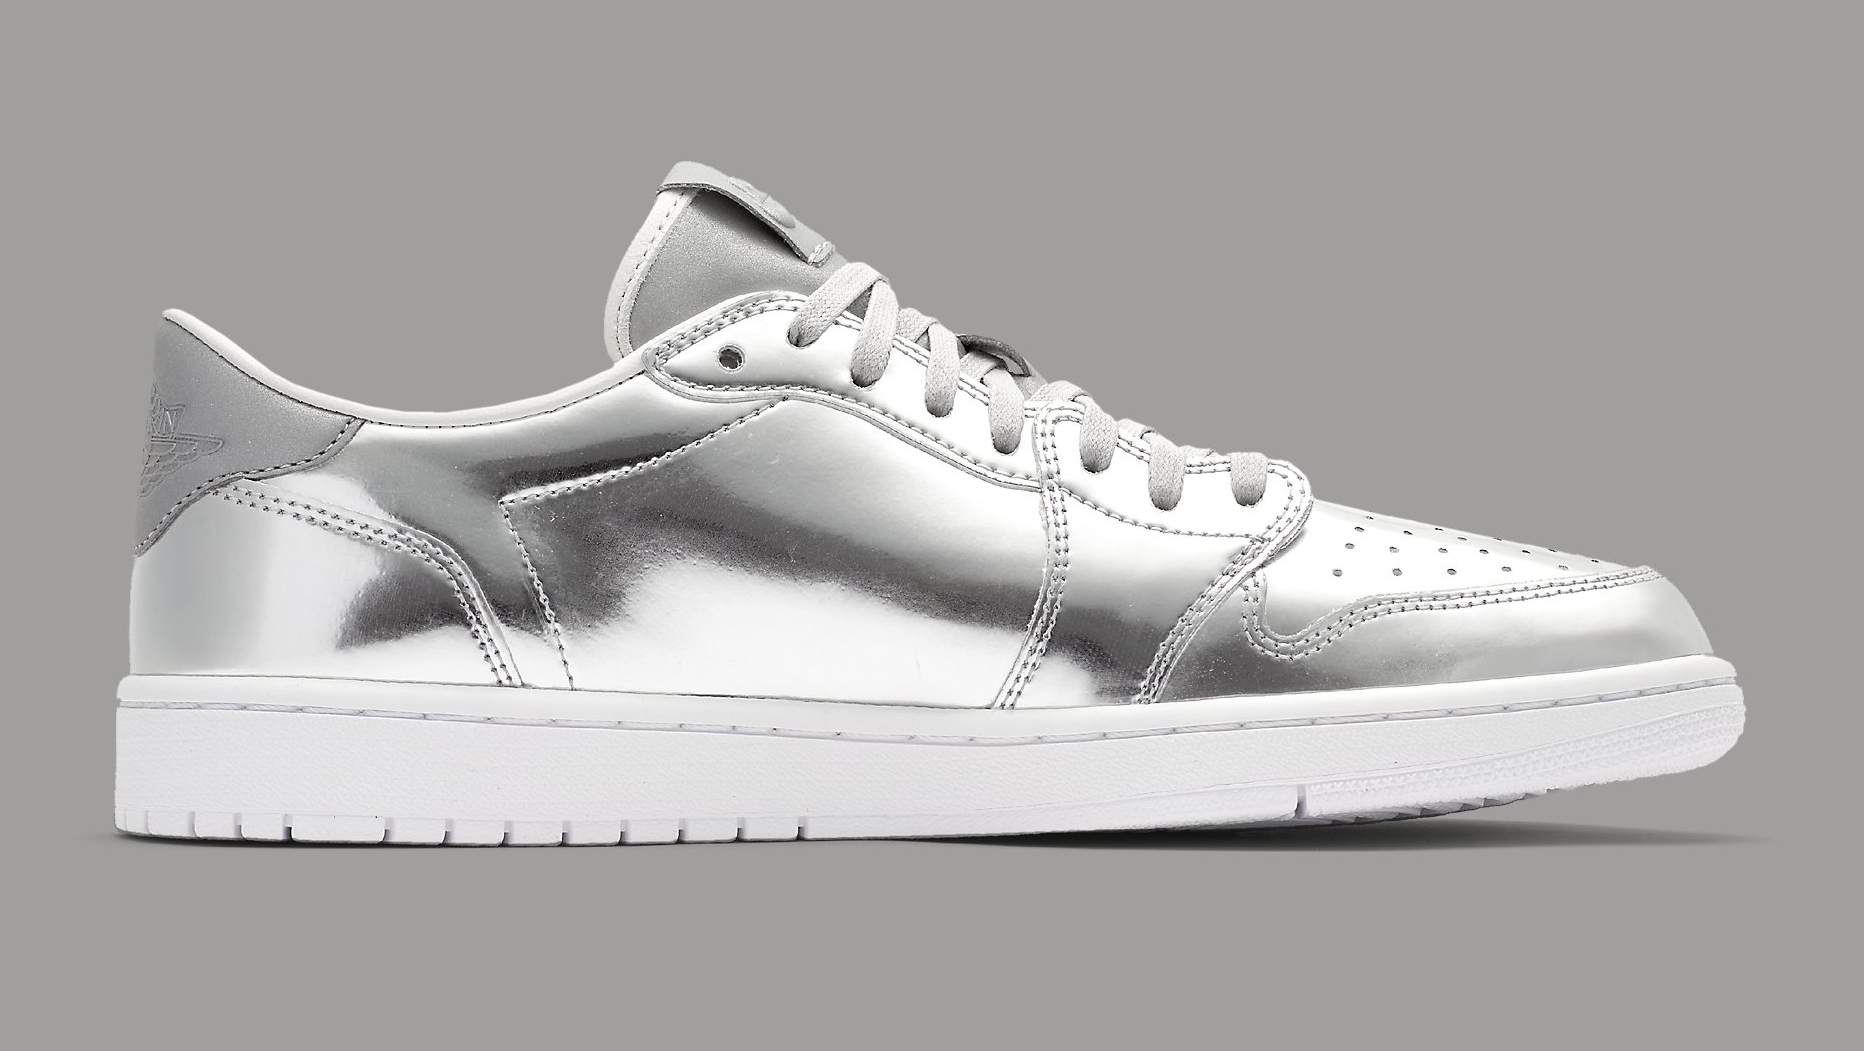 Silver Air Jordan 1 Low 852549-003 Medial